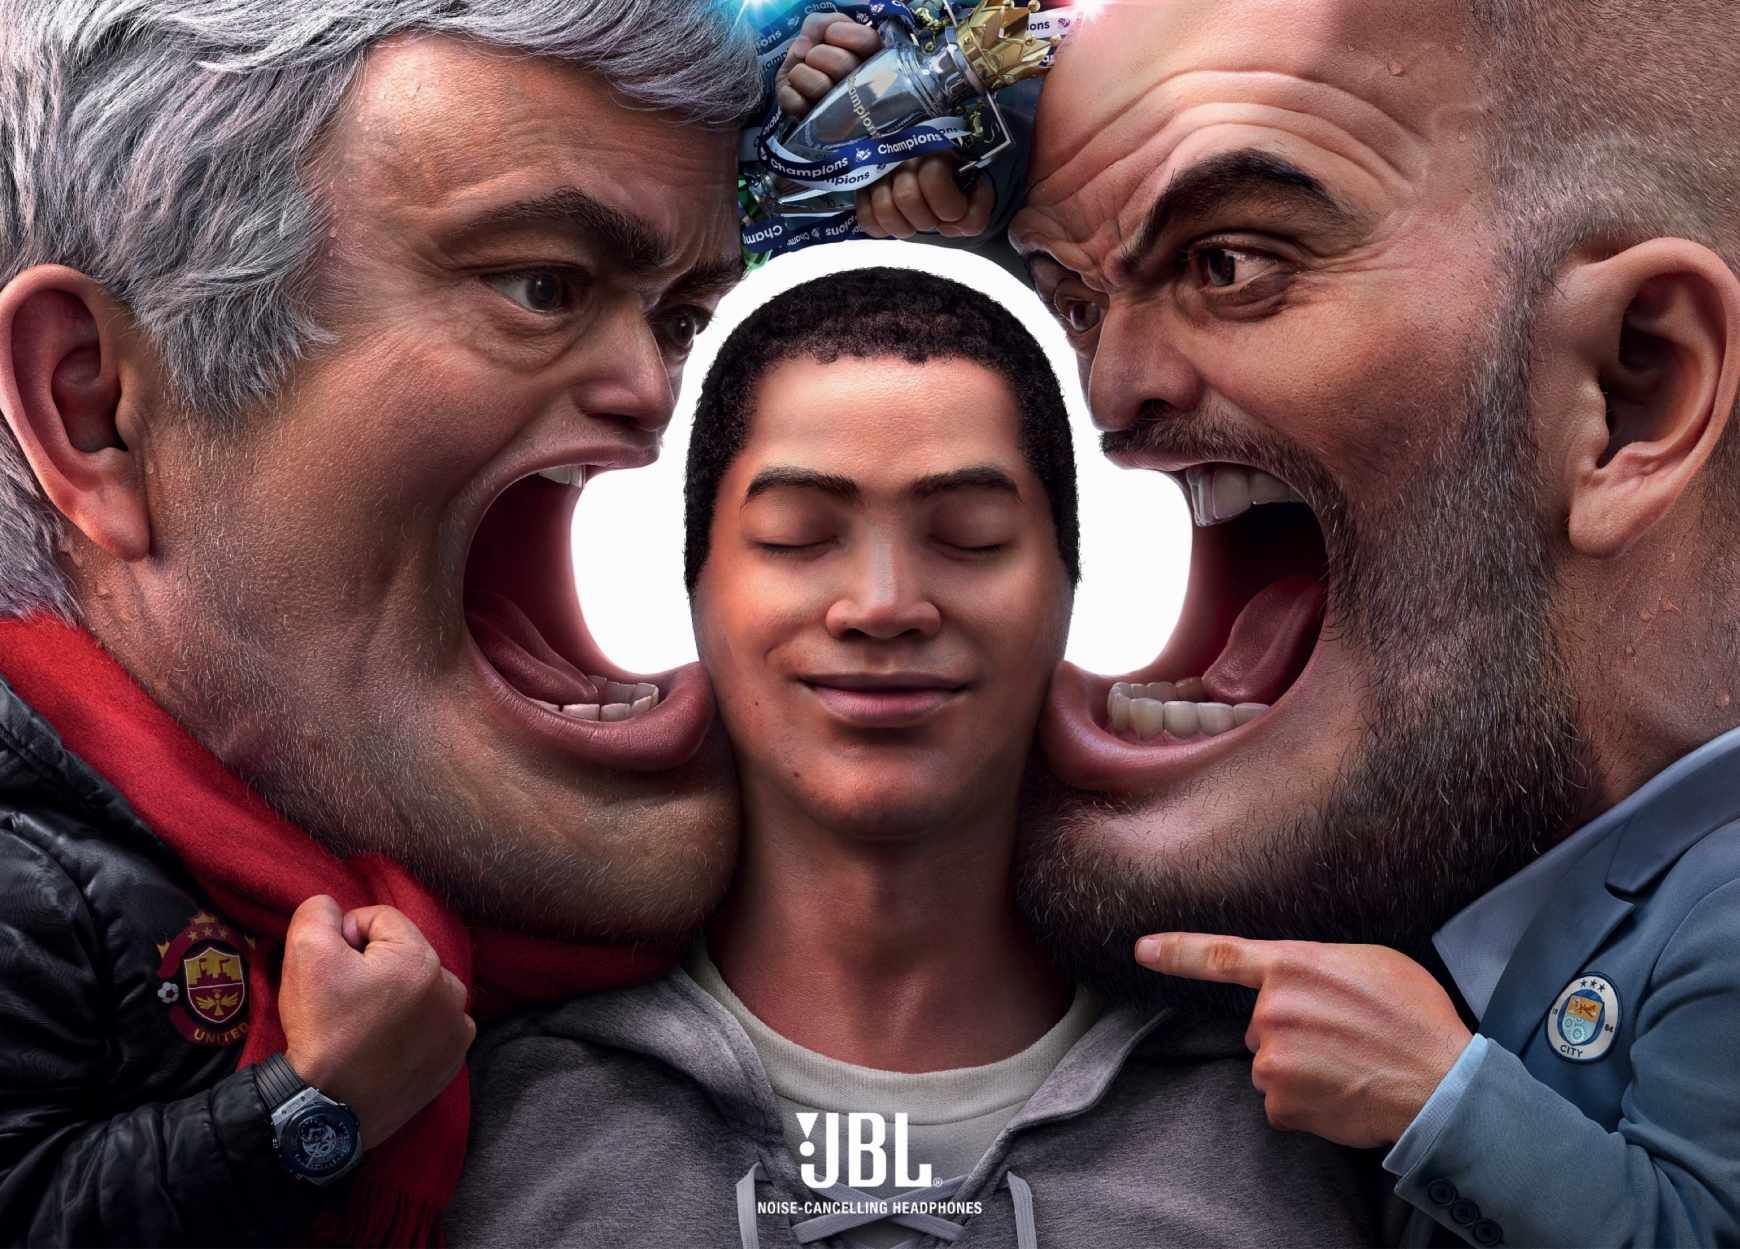 JBL Print Ad - Block out the Chaos, Football Managers